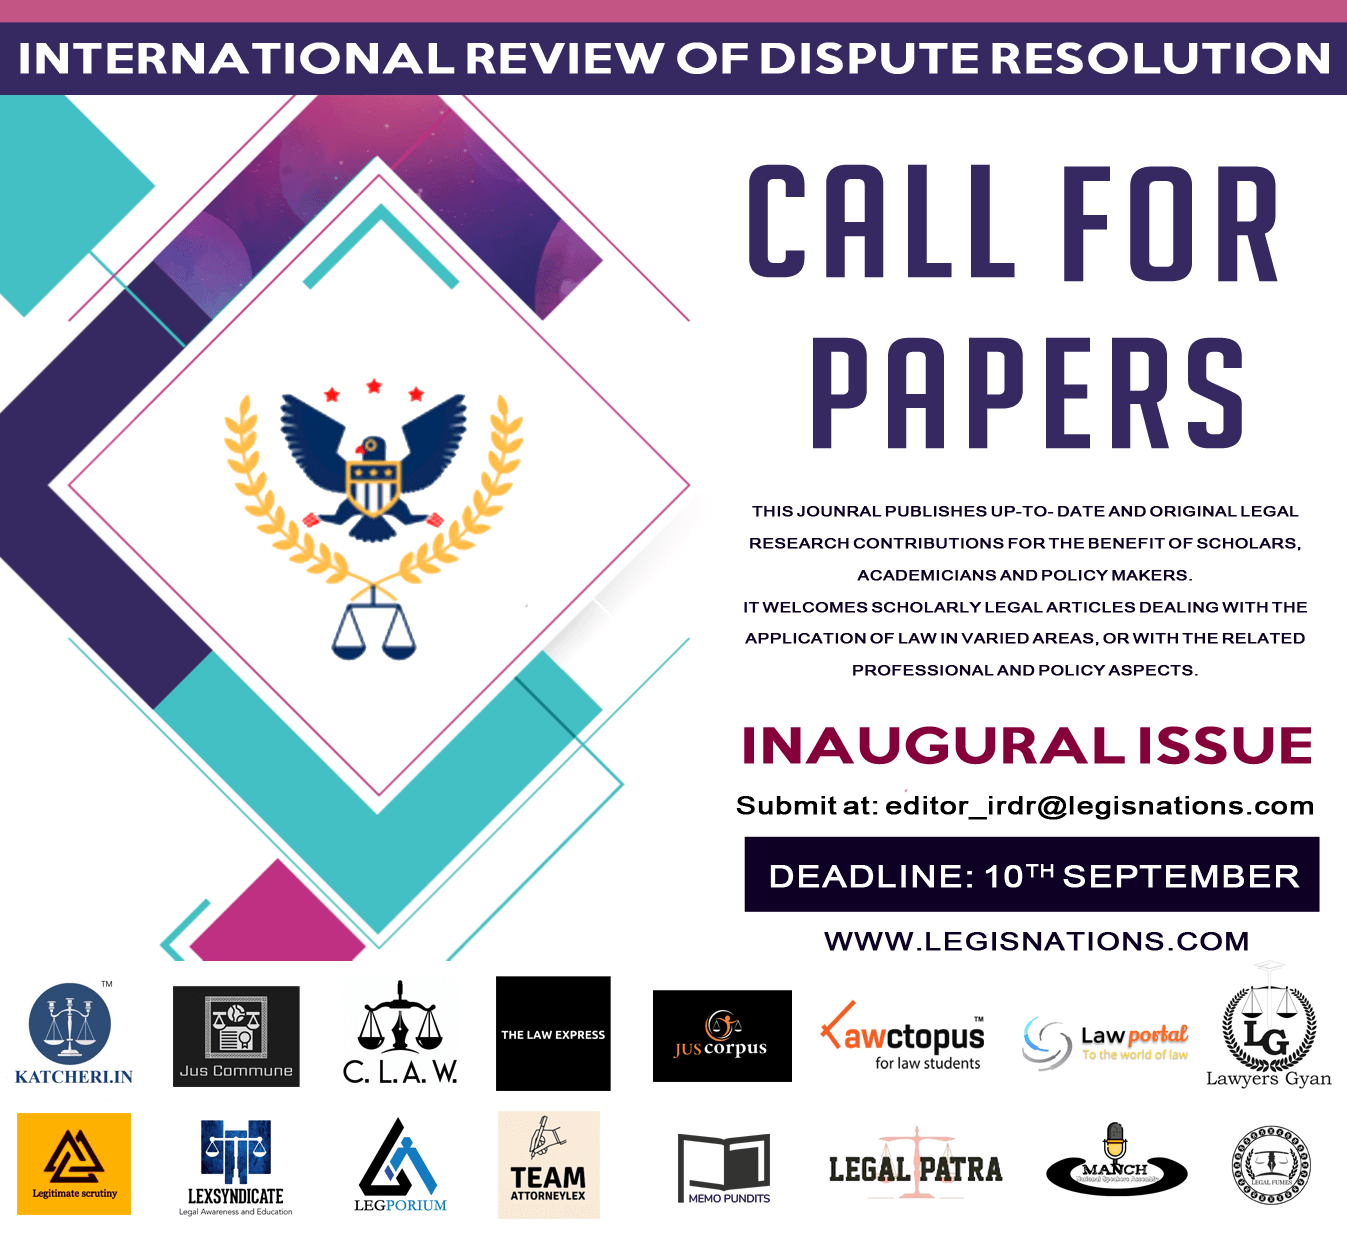 INTERNATIONAL REVIEW OF DISPUTE RESOLUTION